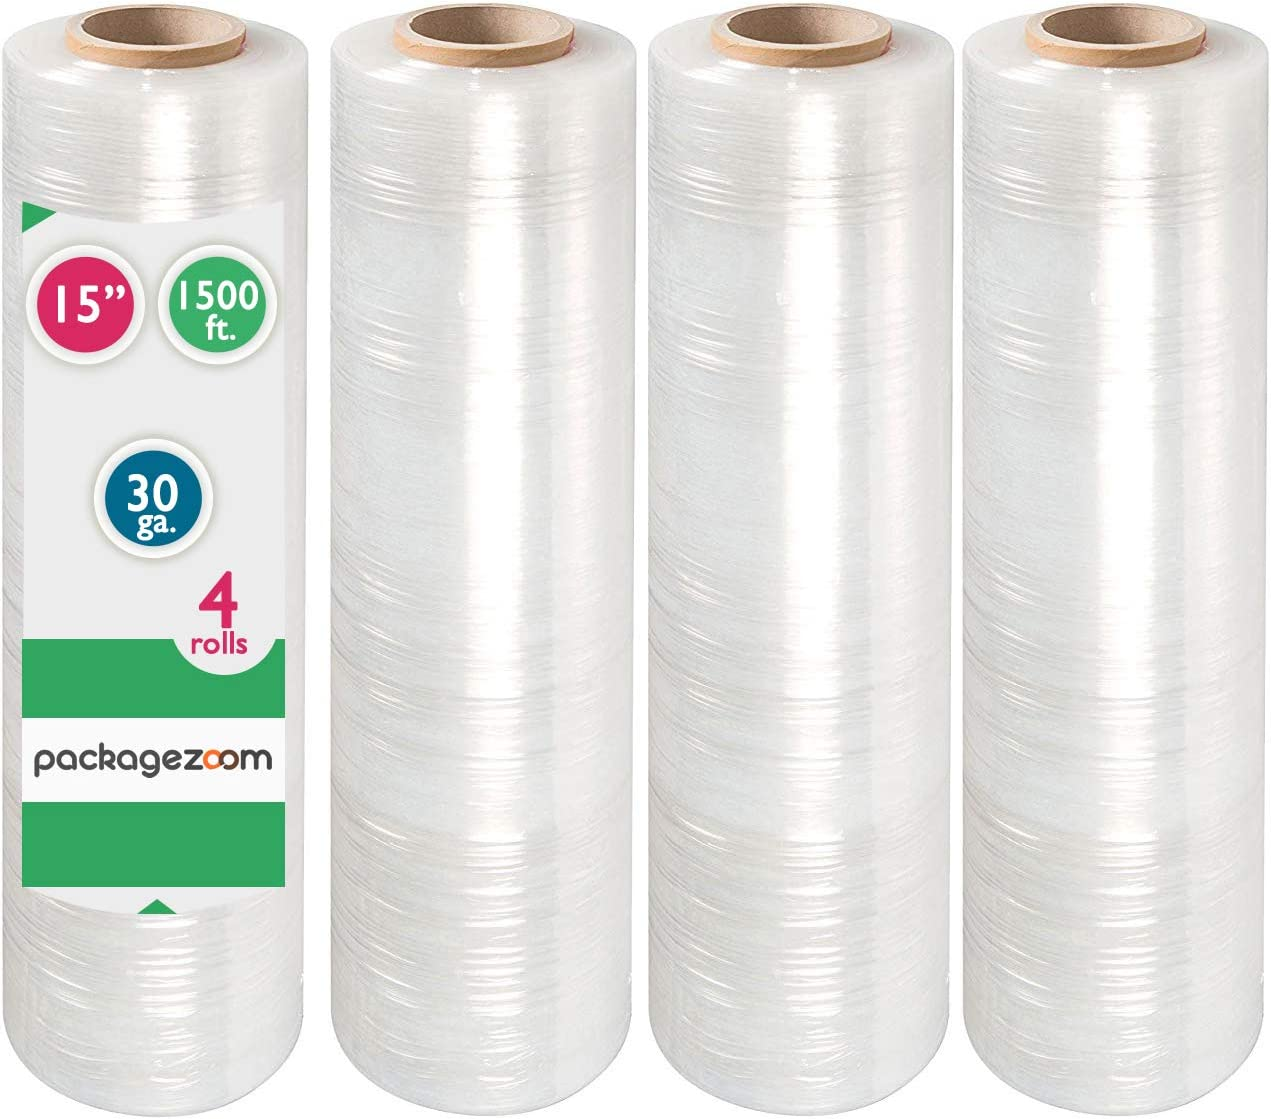 """PackageZoom Price reduction Fixed price for sale Pre Stretched 15"""" x 1500 ft Wra Stretch 4 Rolls"""